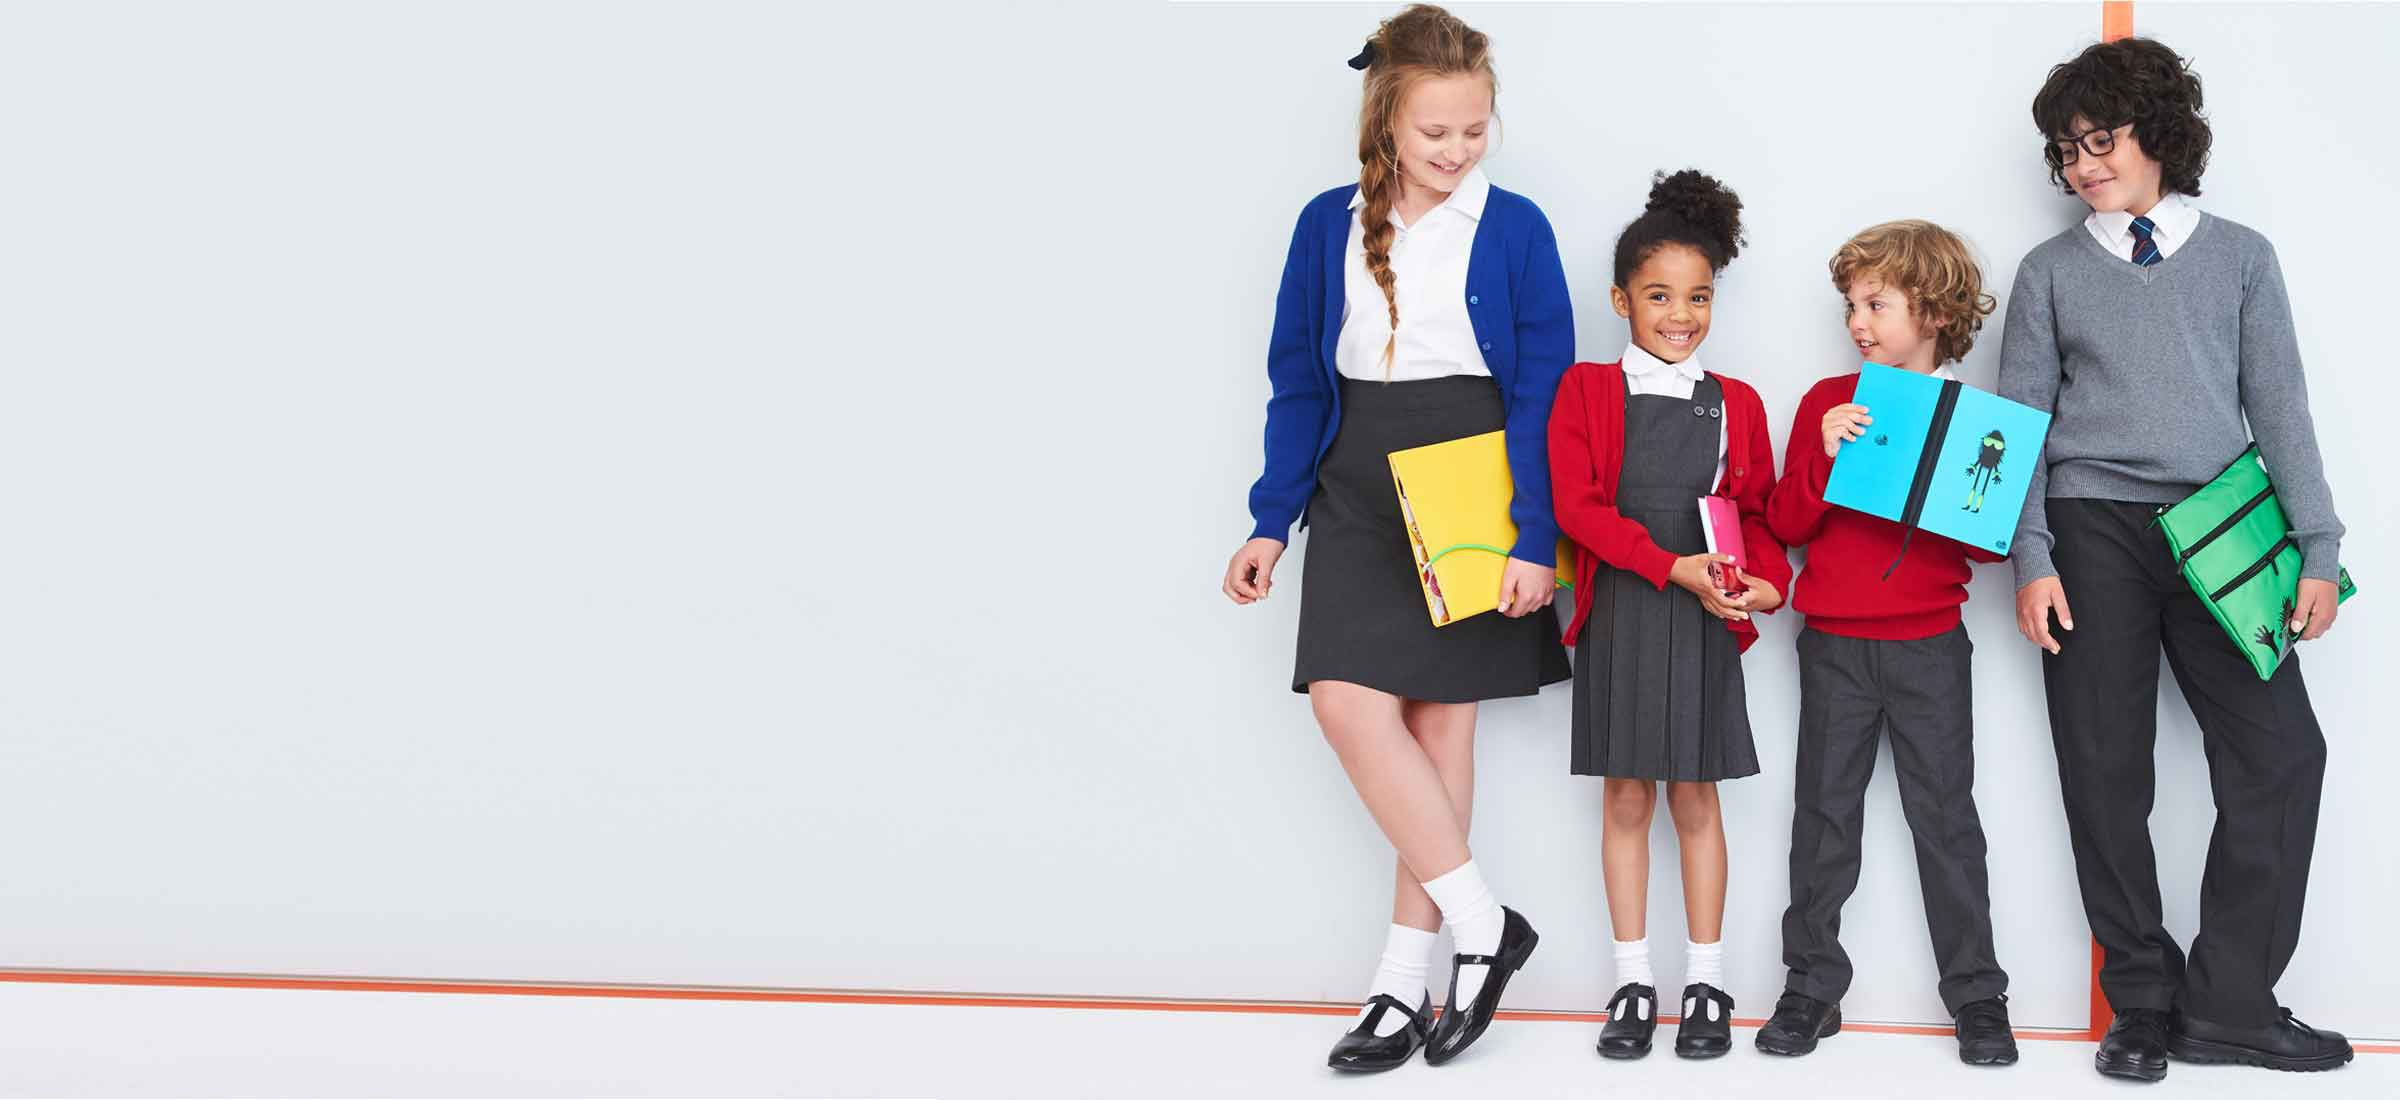 Our school uniform is market-leading thanks to the ingenious designs, extra protection on the fabrics and clever finishing touches